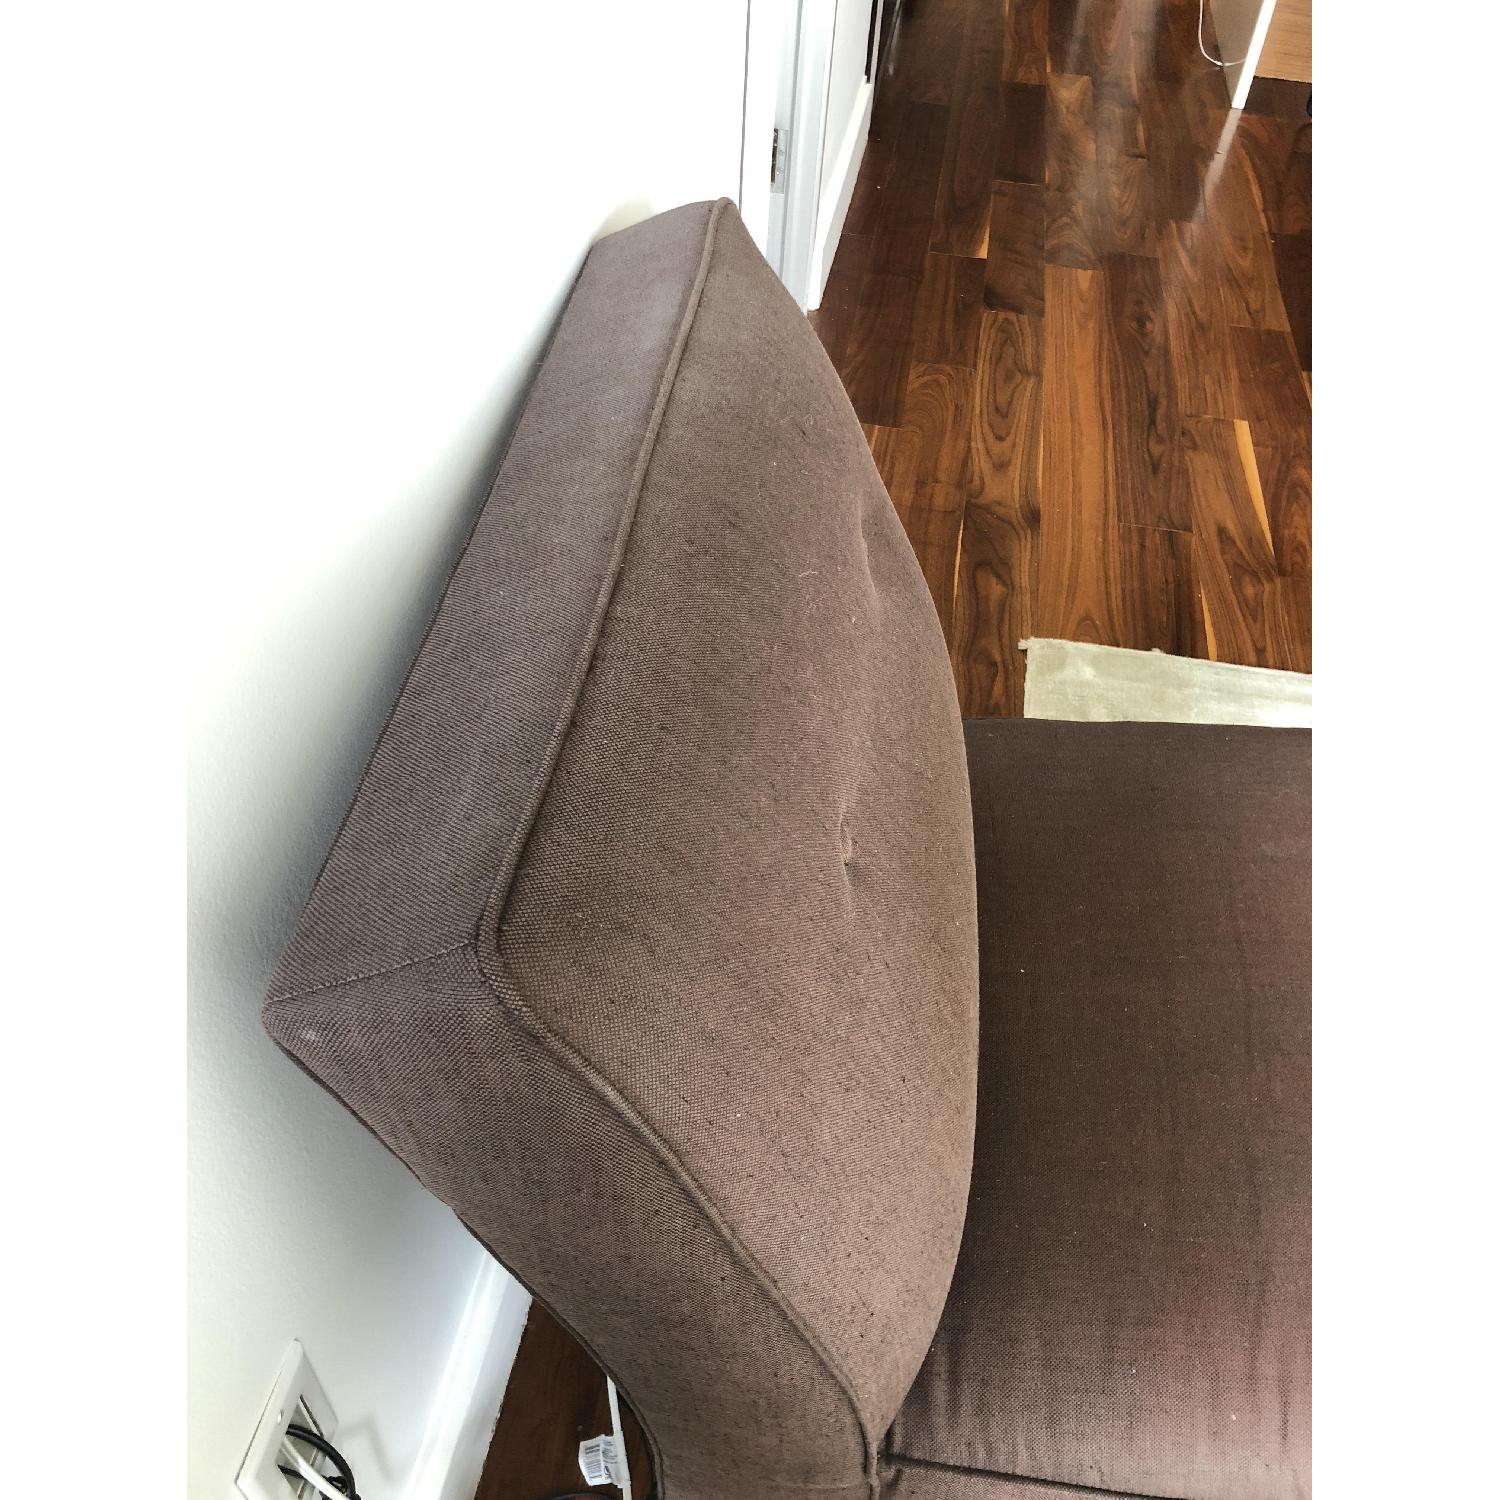 ABC Carpet and Home Slipper Chair - image-5